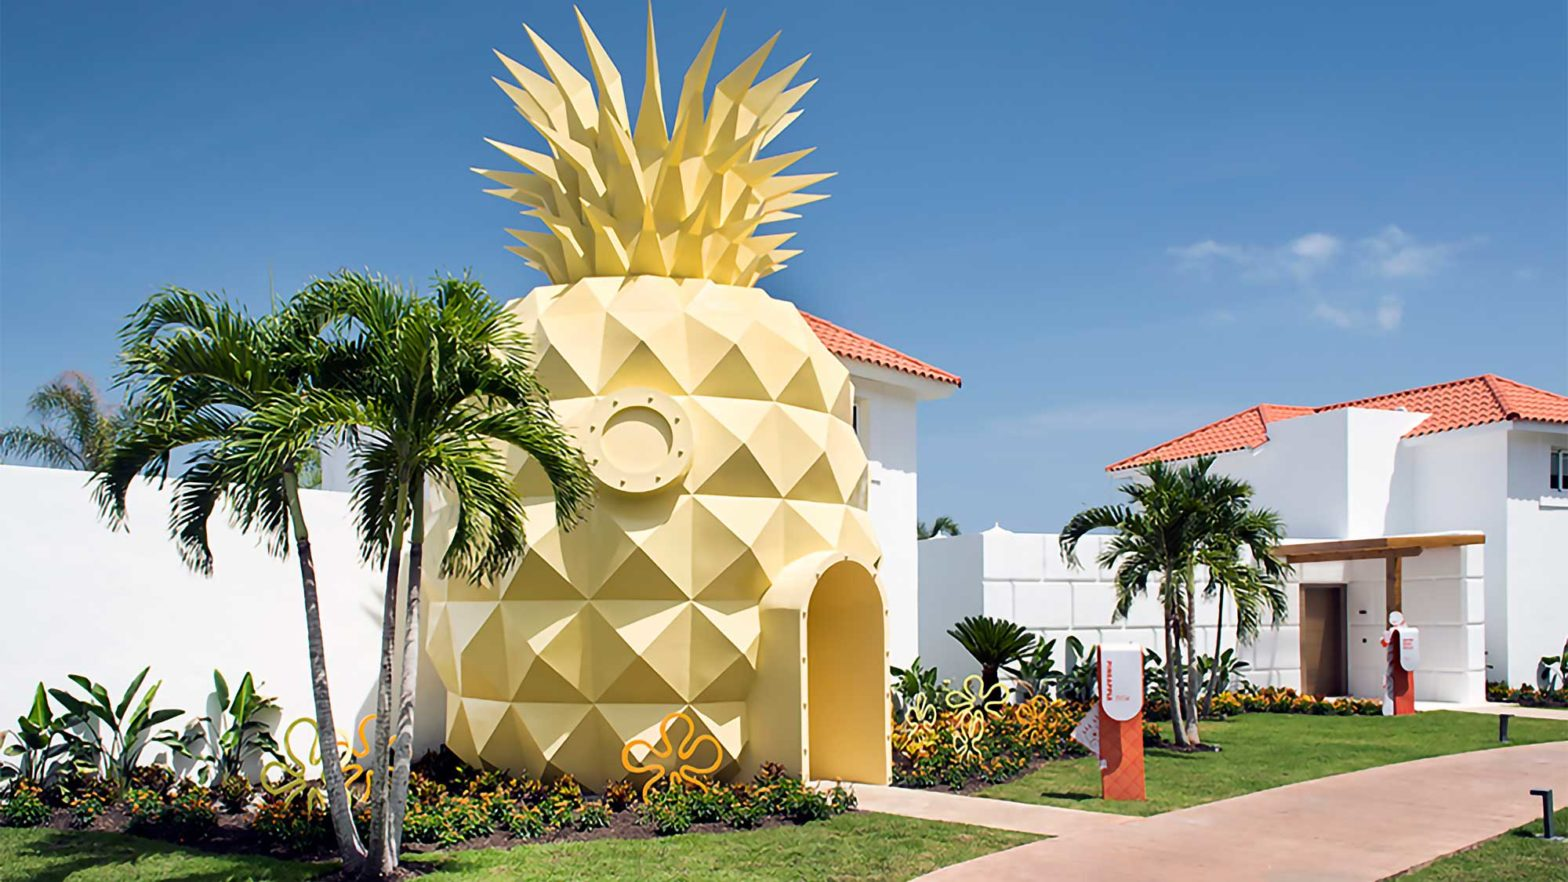 SpongeBob SquarePants The Pineapple Villa